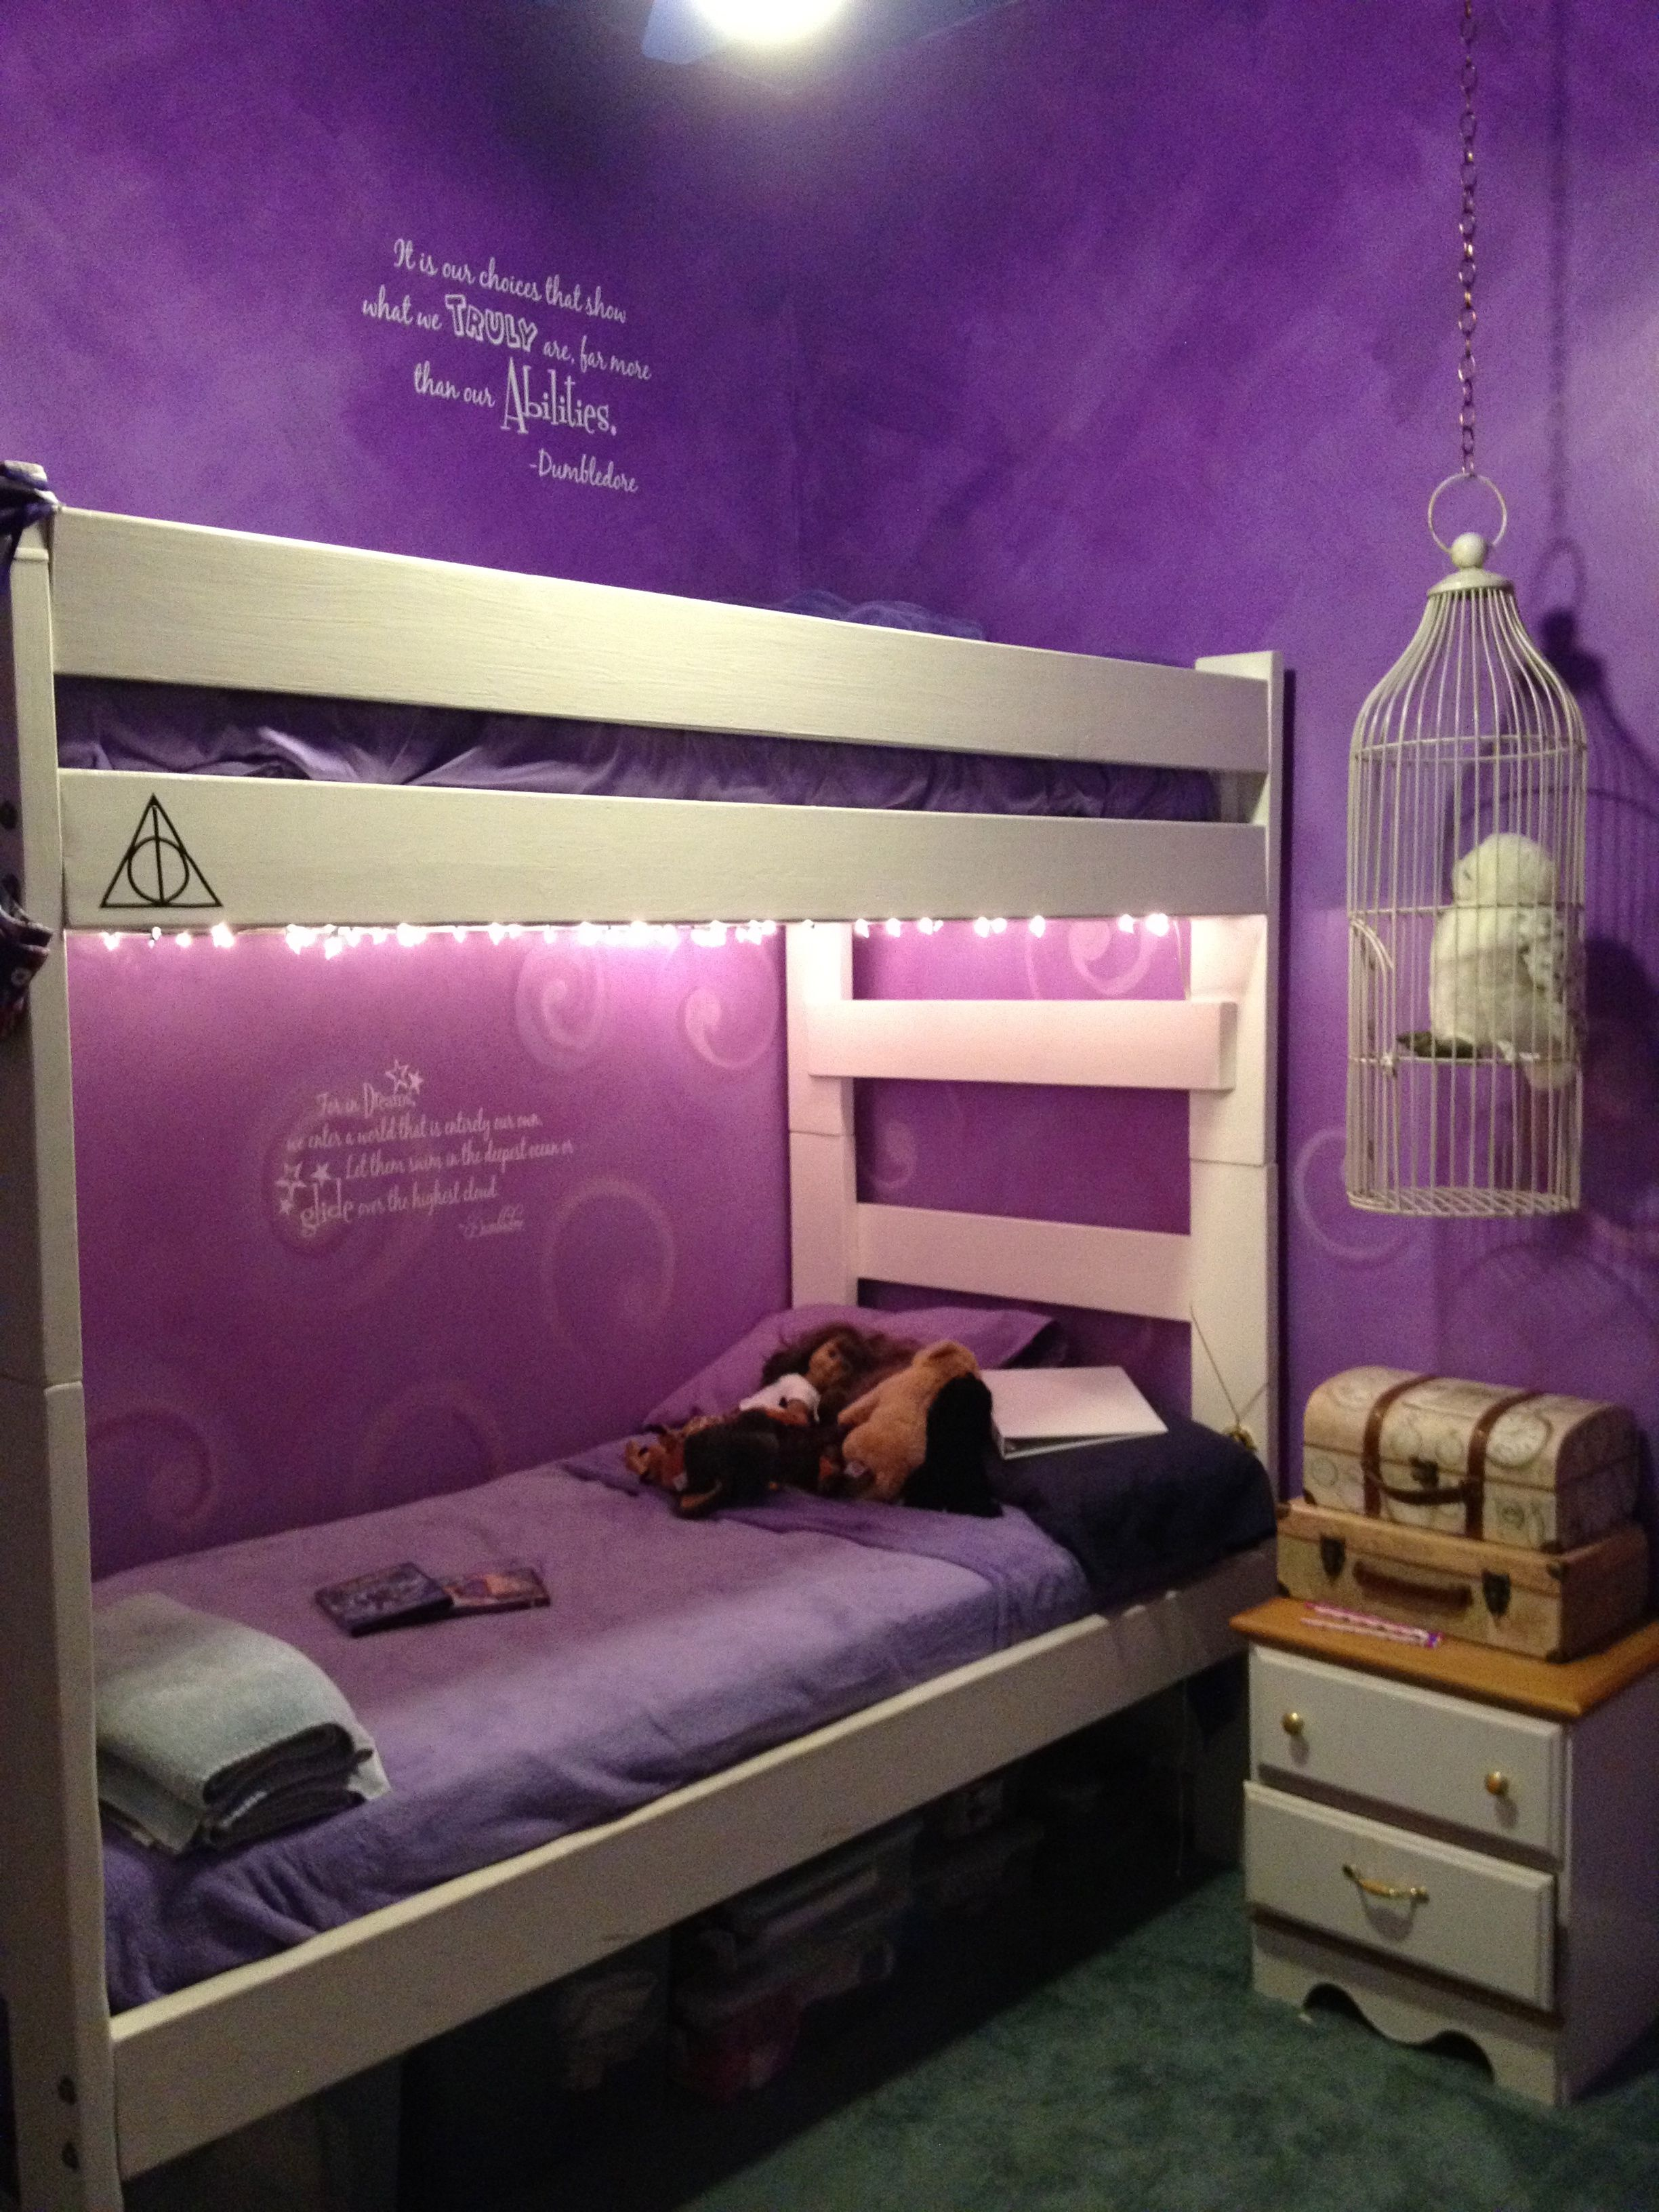 Harry Potter Bedroom I Love Plus Those Purple Walls Are To